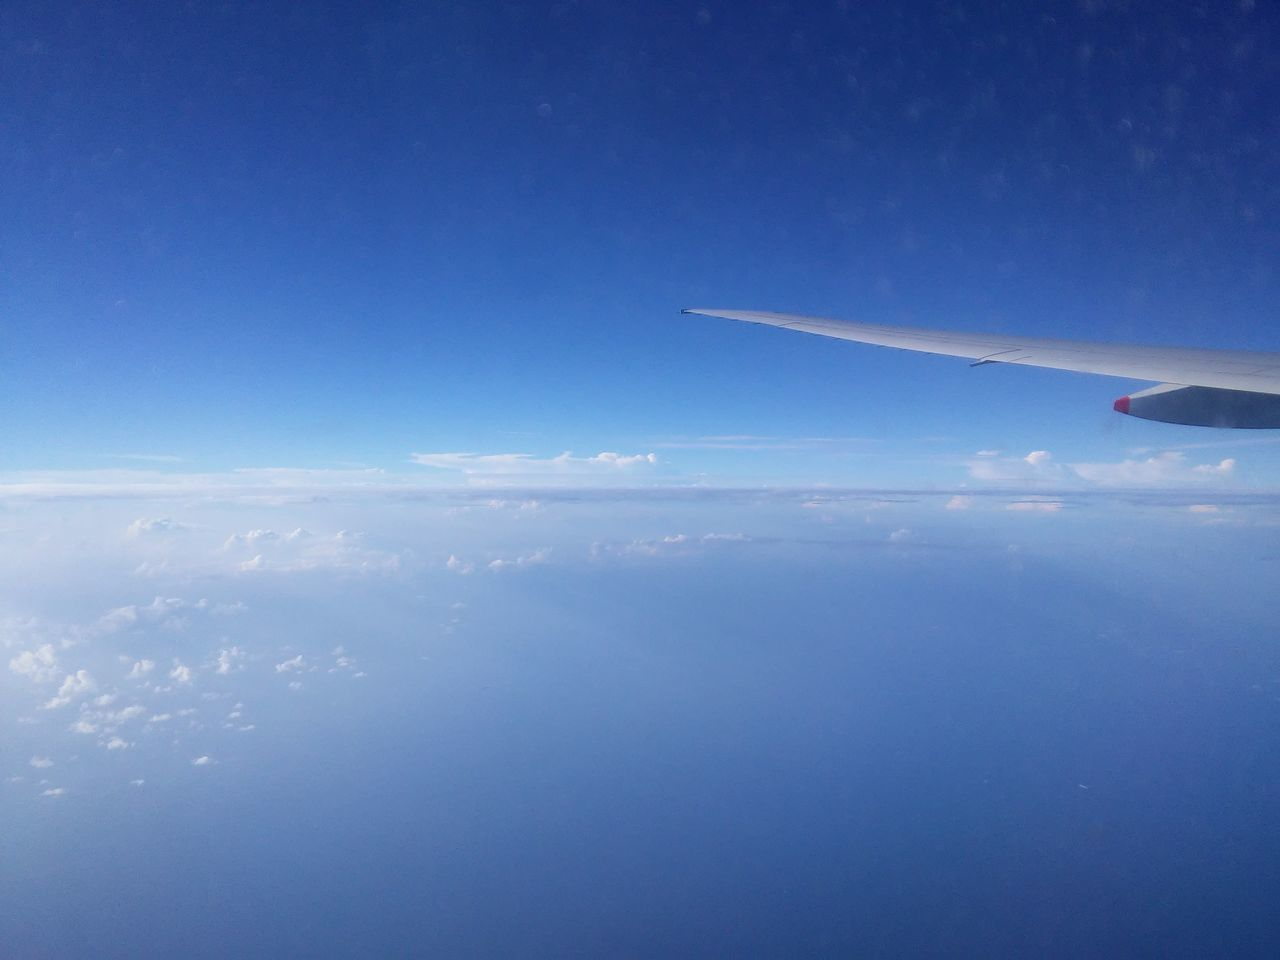 airplane, transportation, sky, blue, journey, aerial view, airplane wing, flying, nature, air vehicle, mid-air, travel, mode of transport, cloud - sky, scenics, beauty in nature, no people, day, outdoors